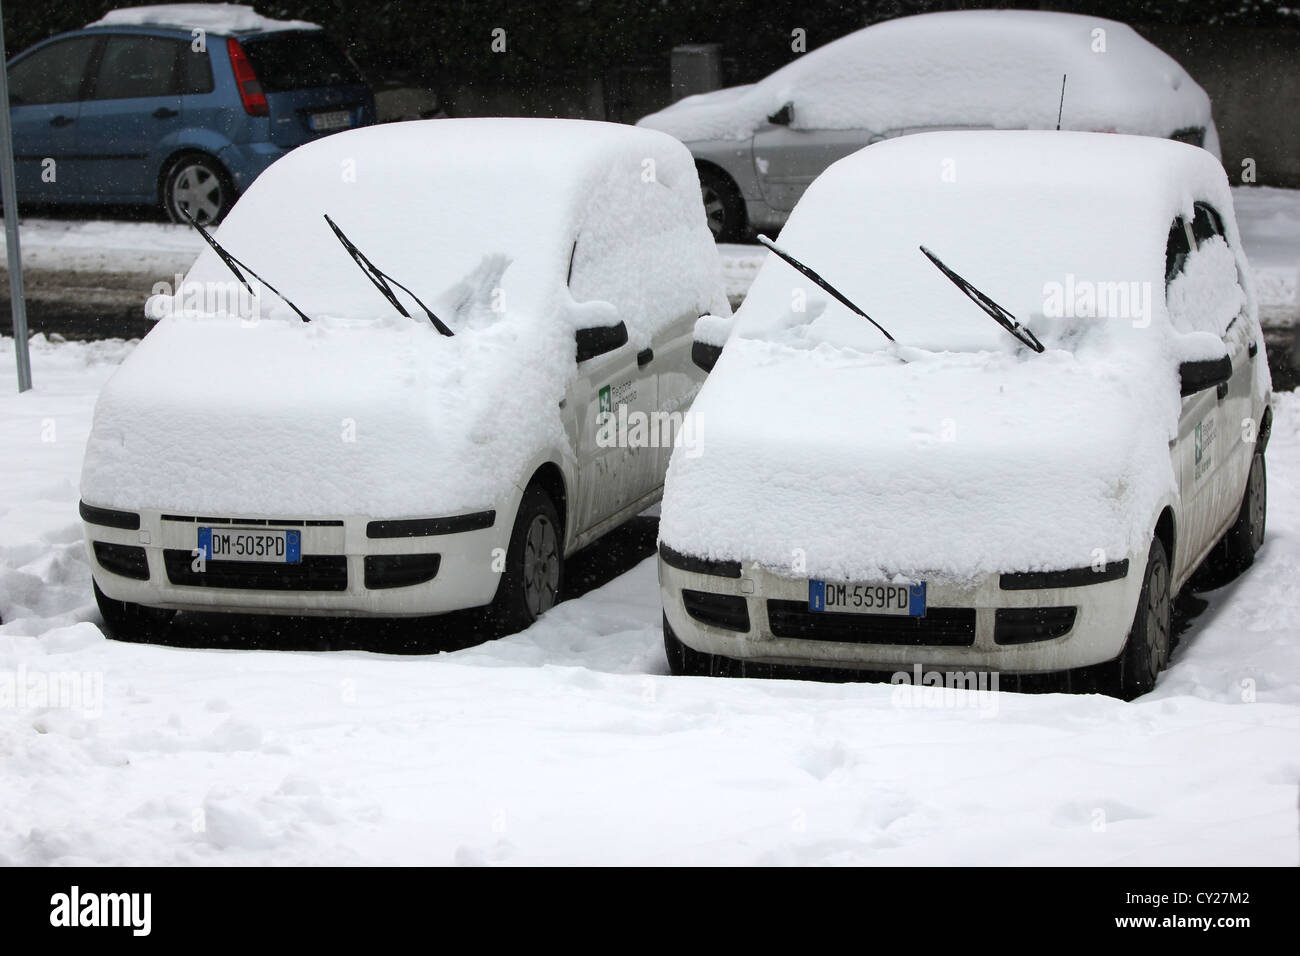 two identical cars cover in snow, winter, winter roads, parking, traffic in bad weather, photoarkive - Stock Image